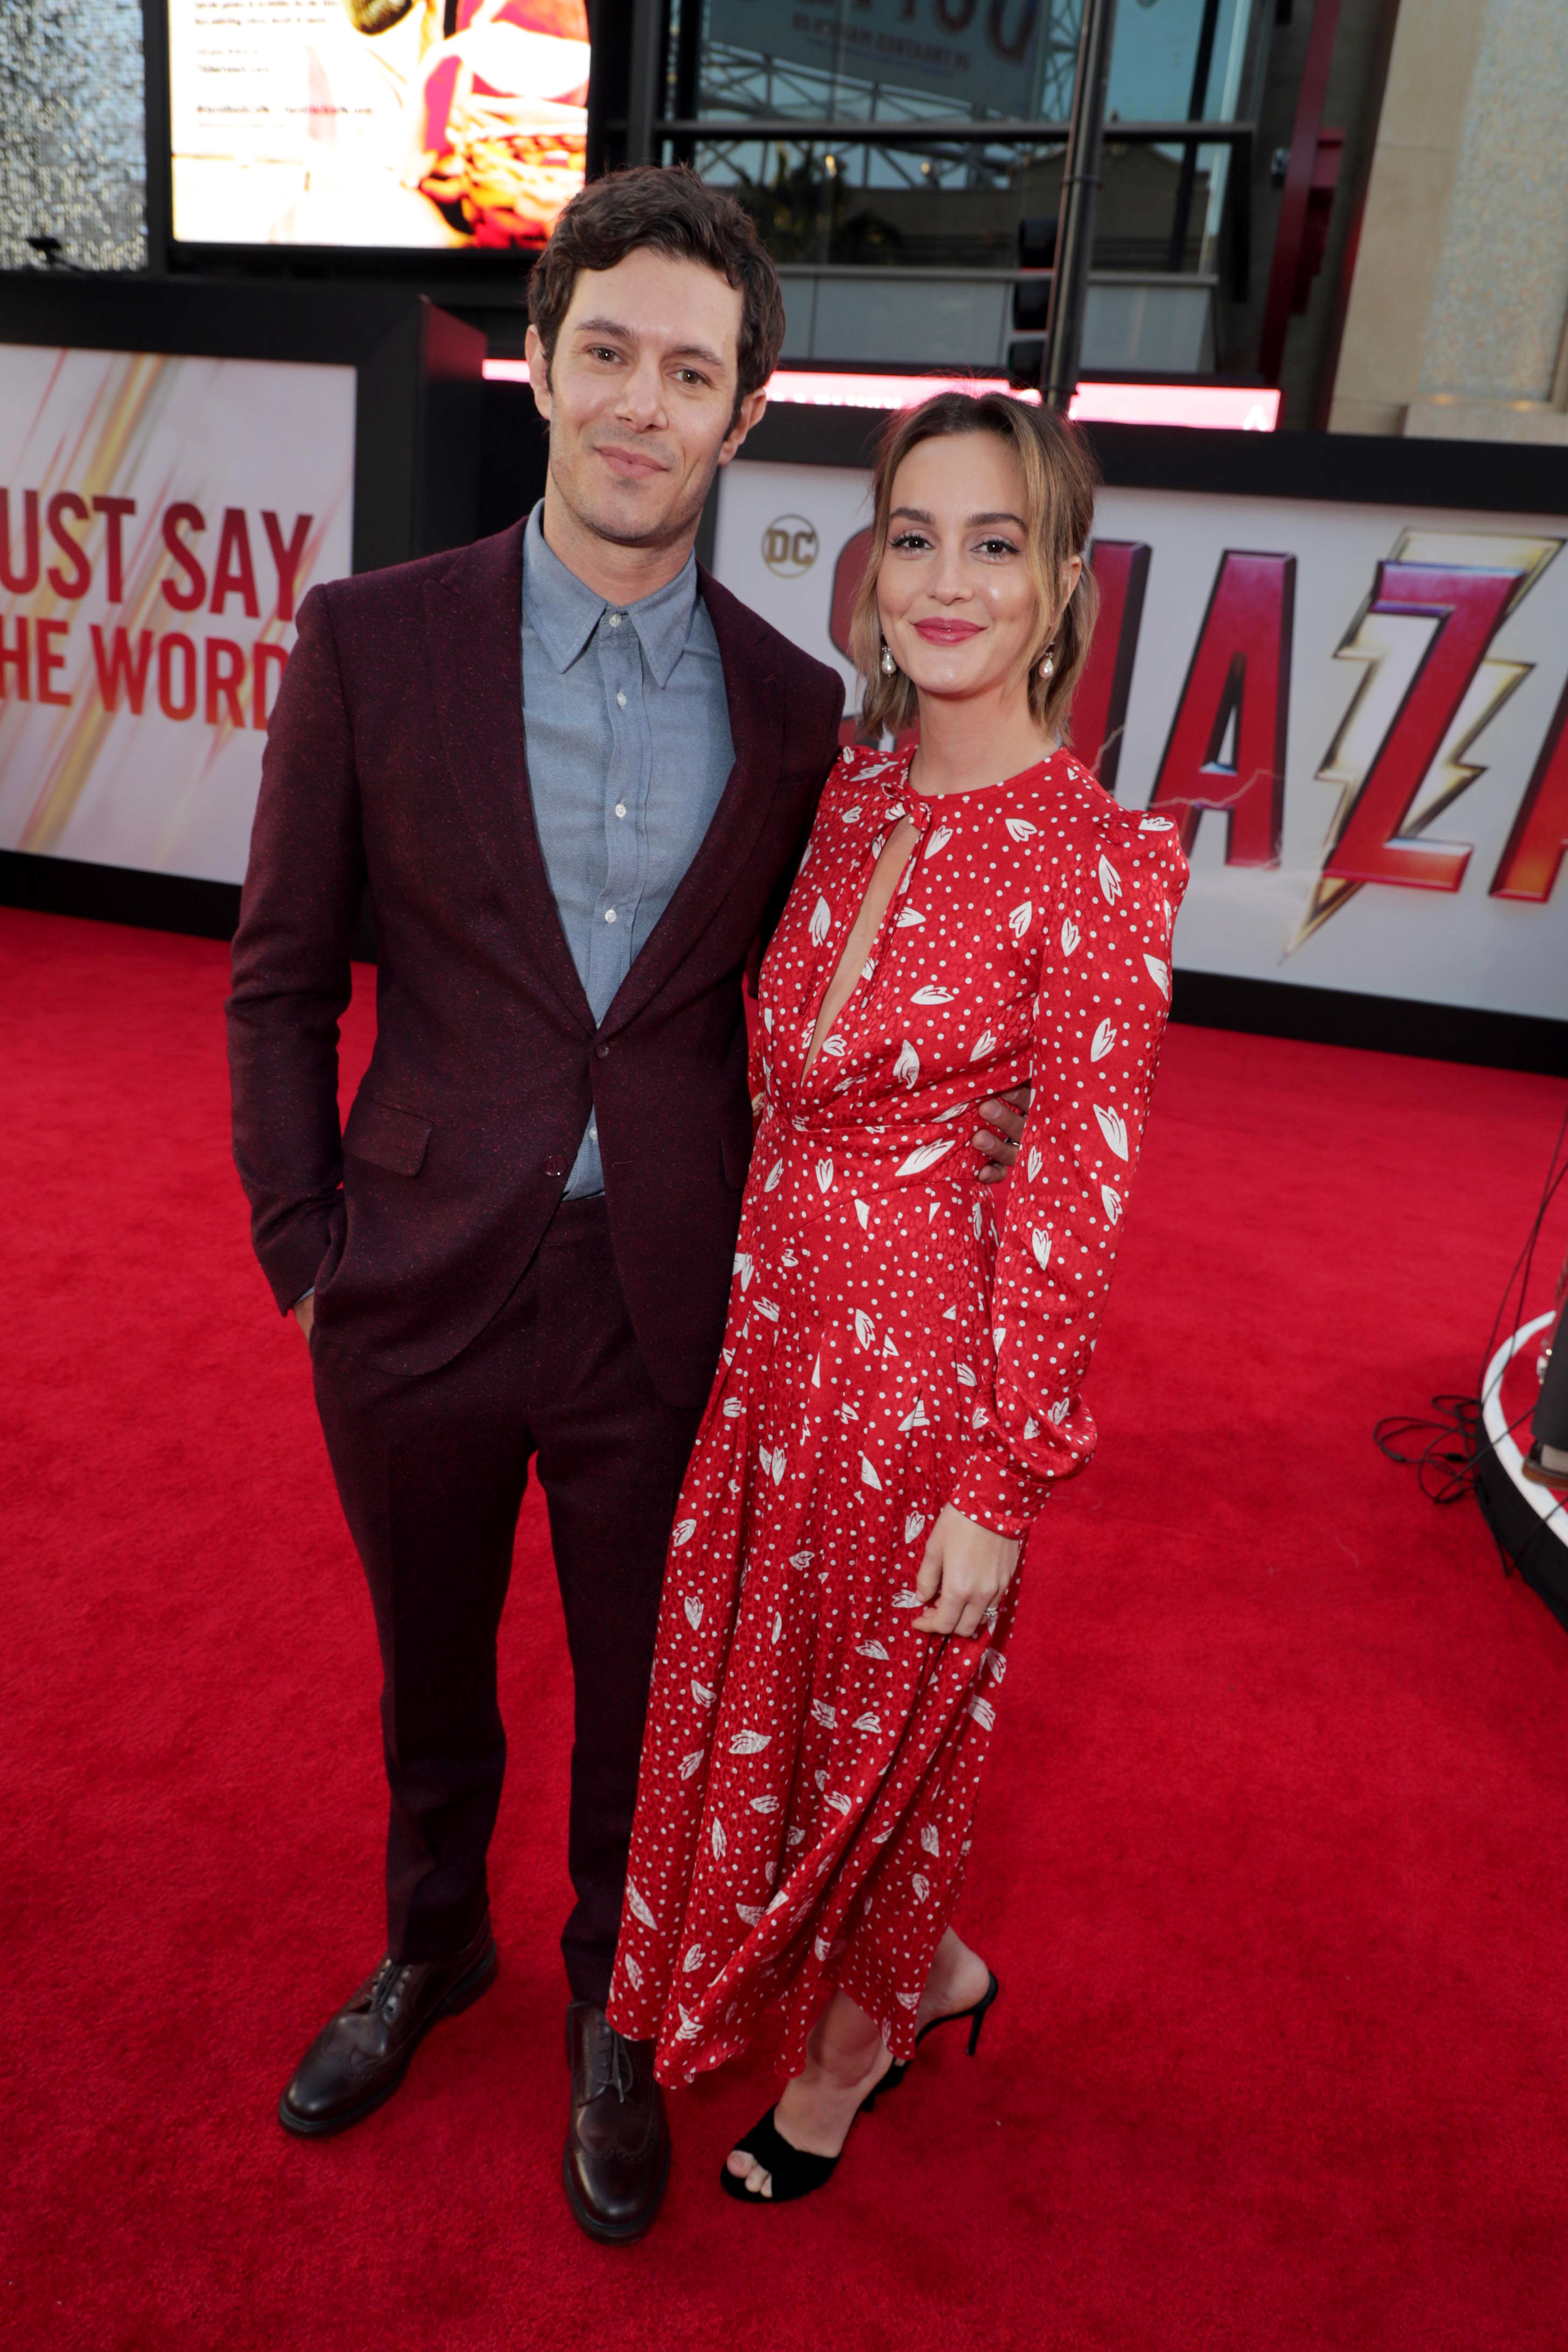 """Adam Brody and Leighton Meester attend the """"Shazam"""" Film Premiere in Los Angeles on March 28, 2019."""